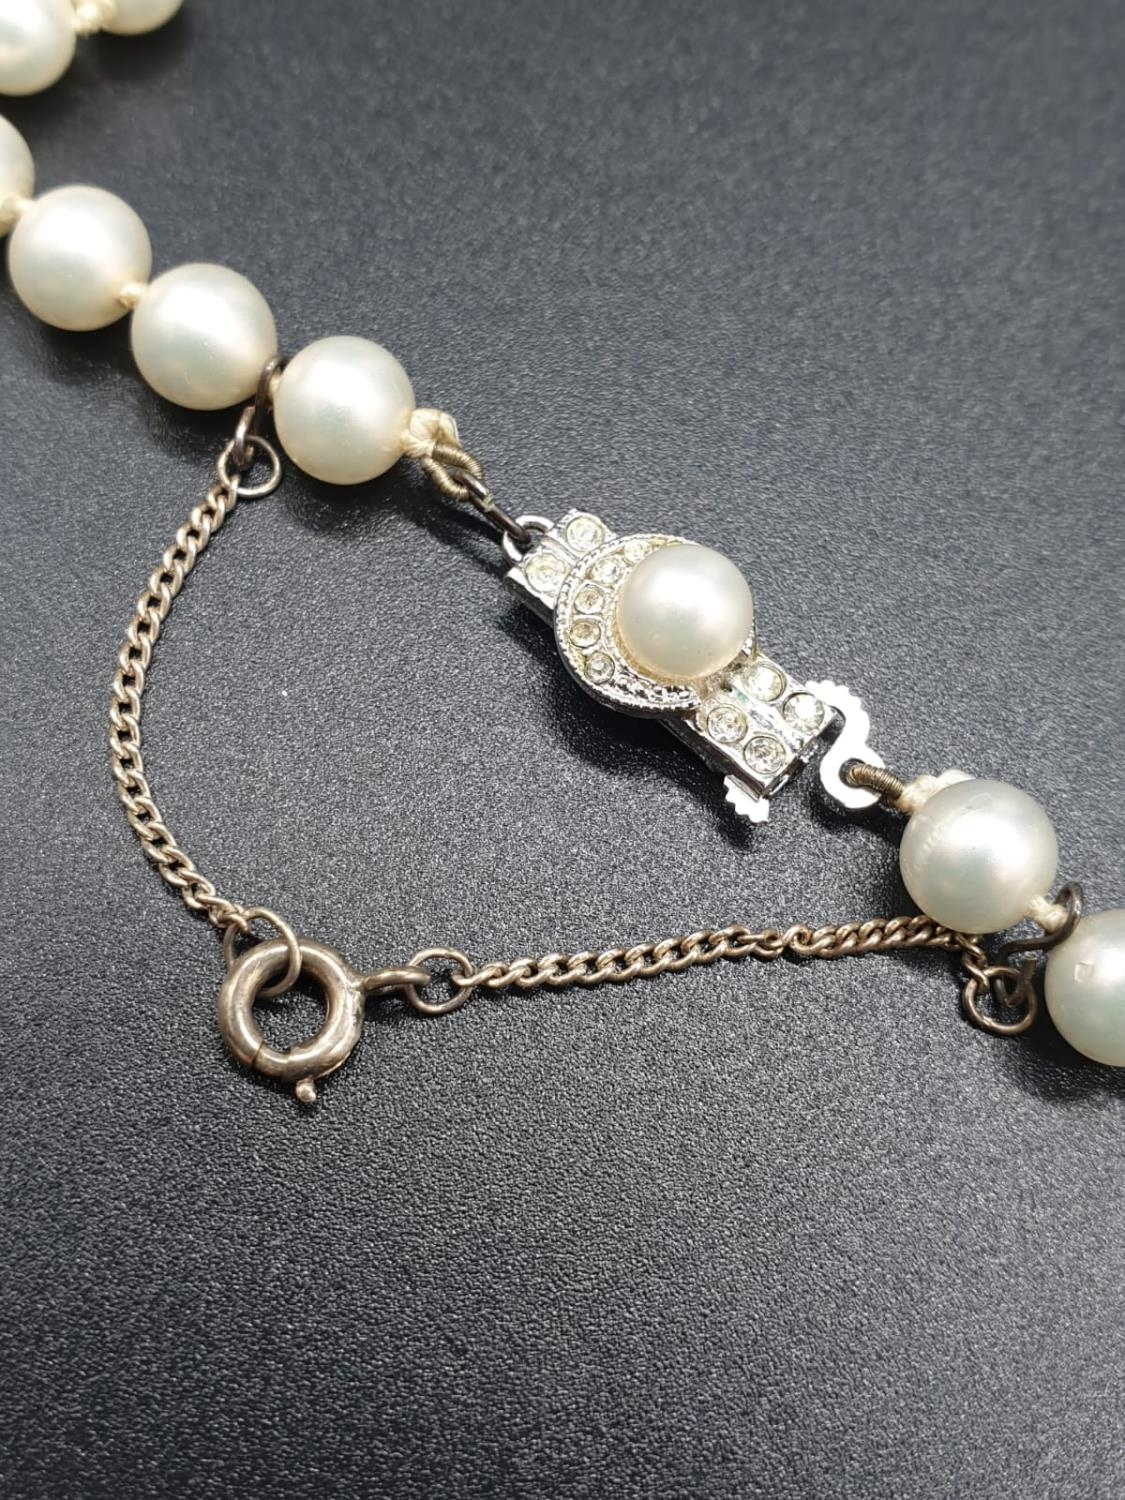 A 60cm String or Cultured Pearls 30g - Image 5 of 5